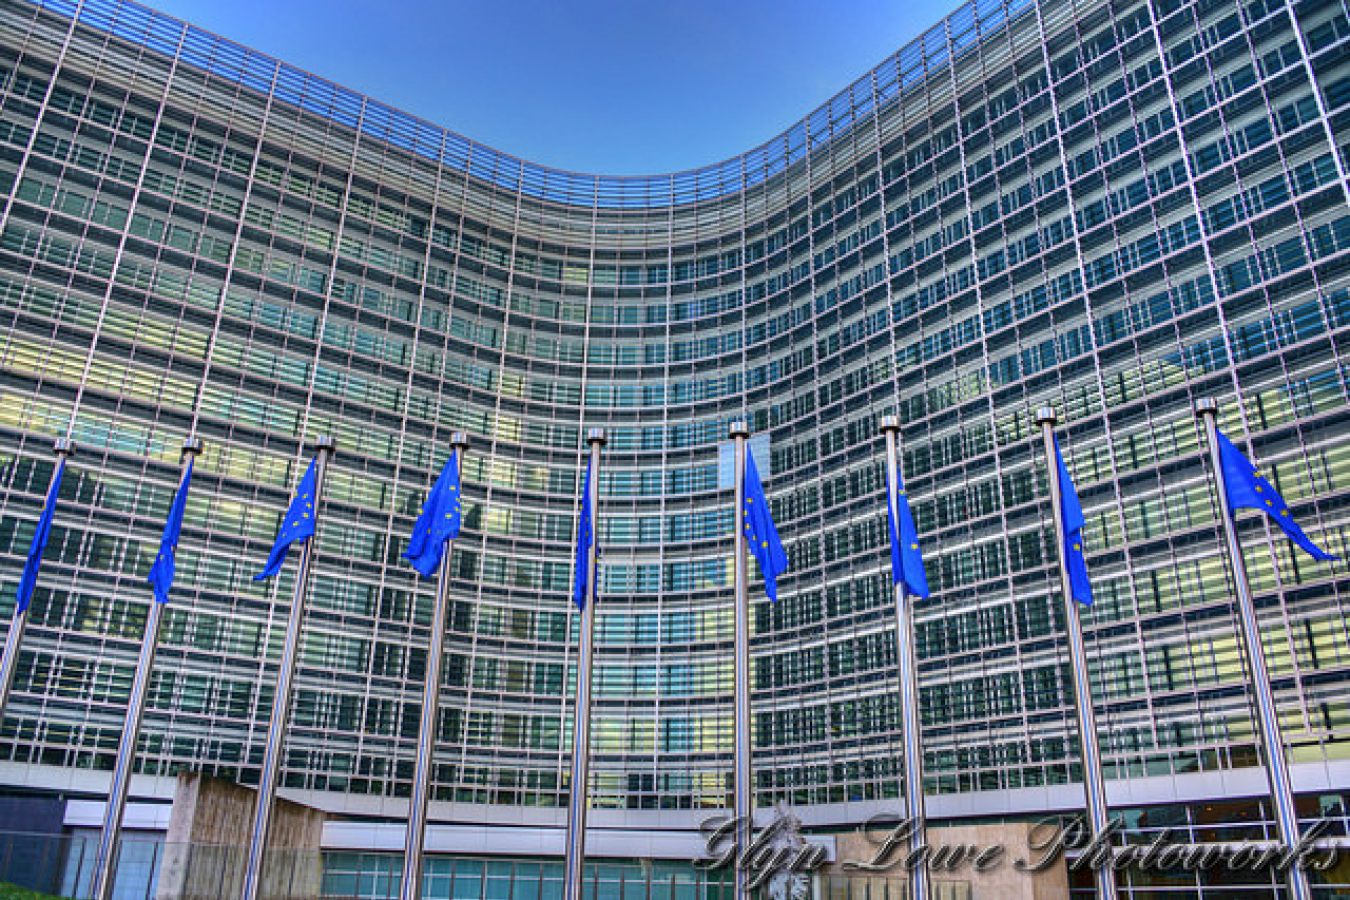 The European Commission - Berlaymont Building